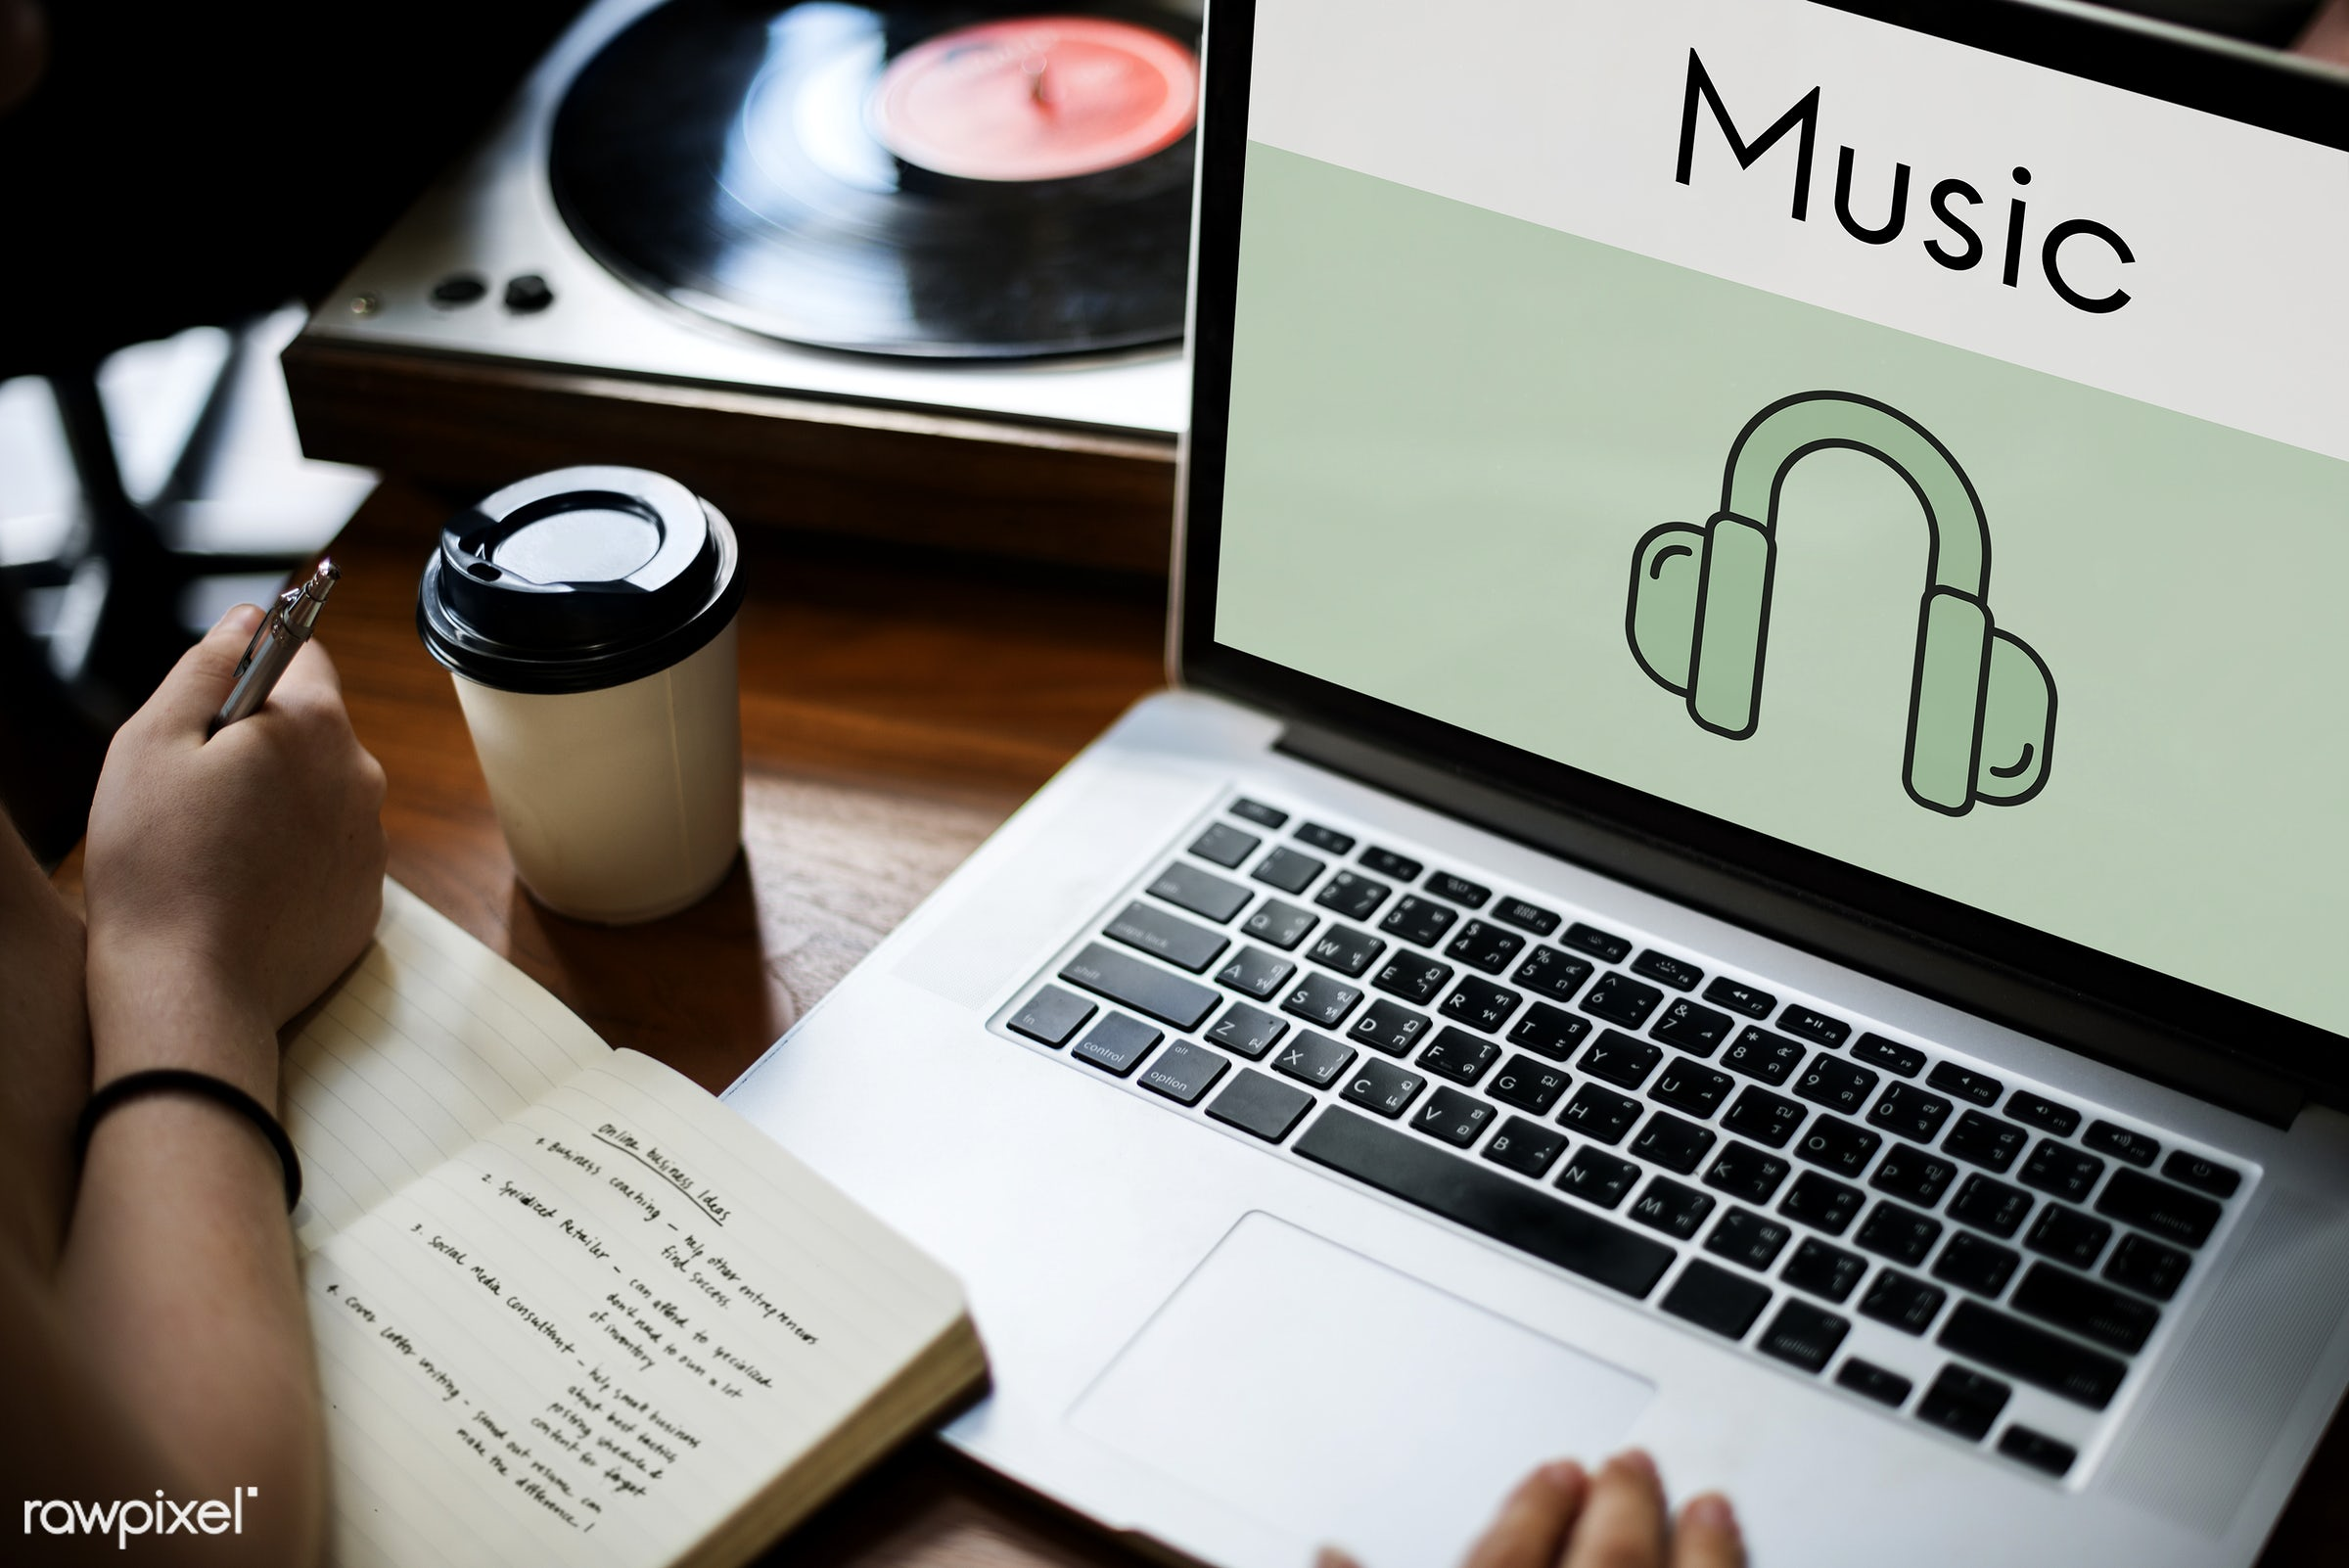 Online music - listen, media, speaker, audio, browsing, chill, coffee cup, creative, device, digital, digital device,...